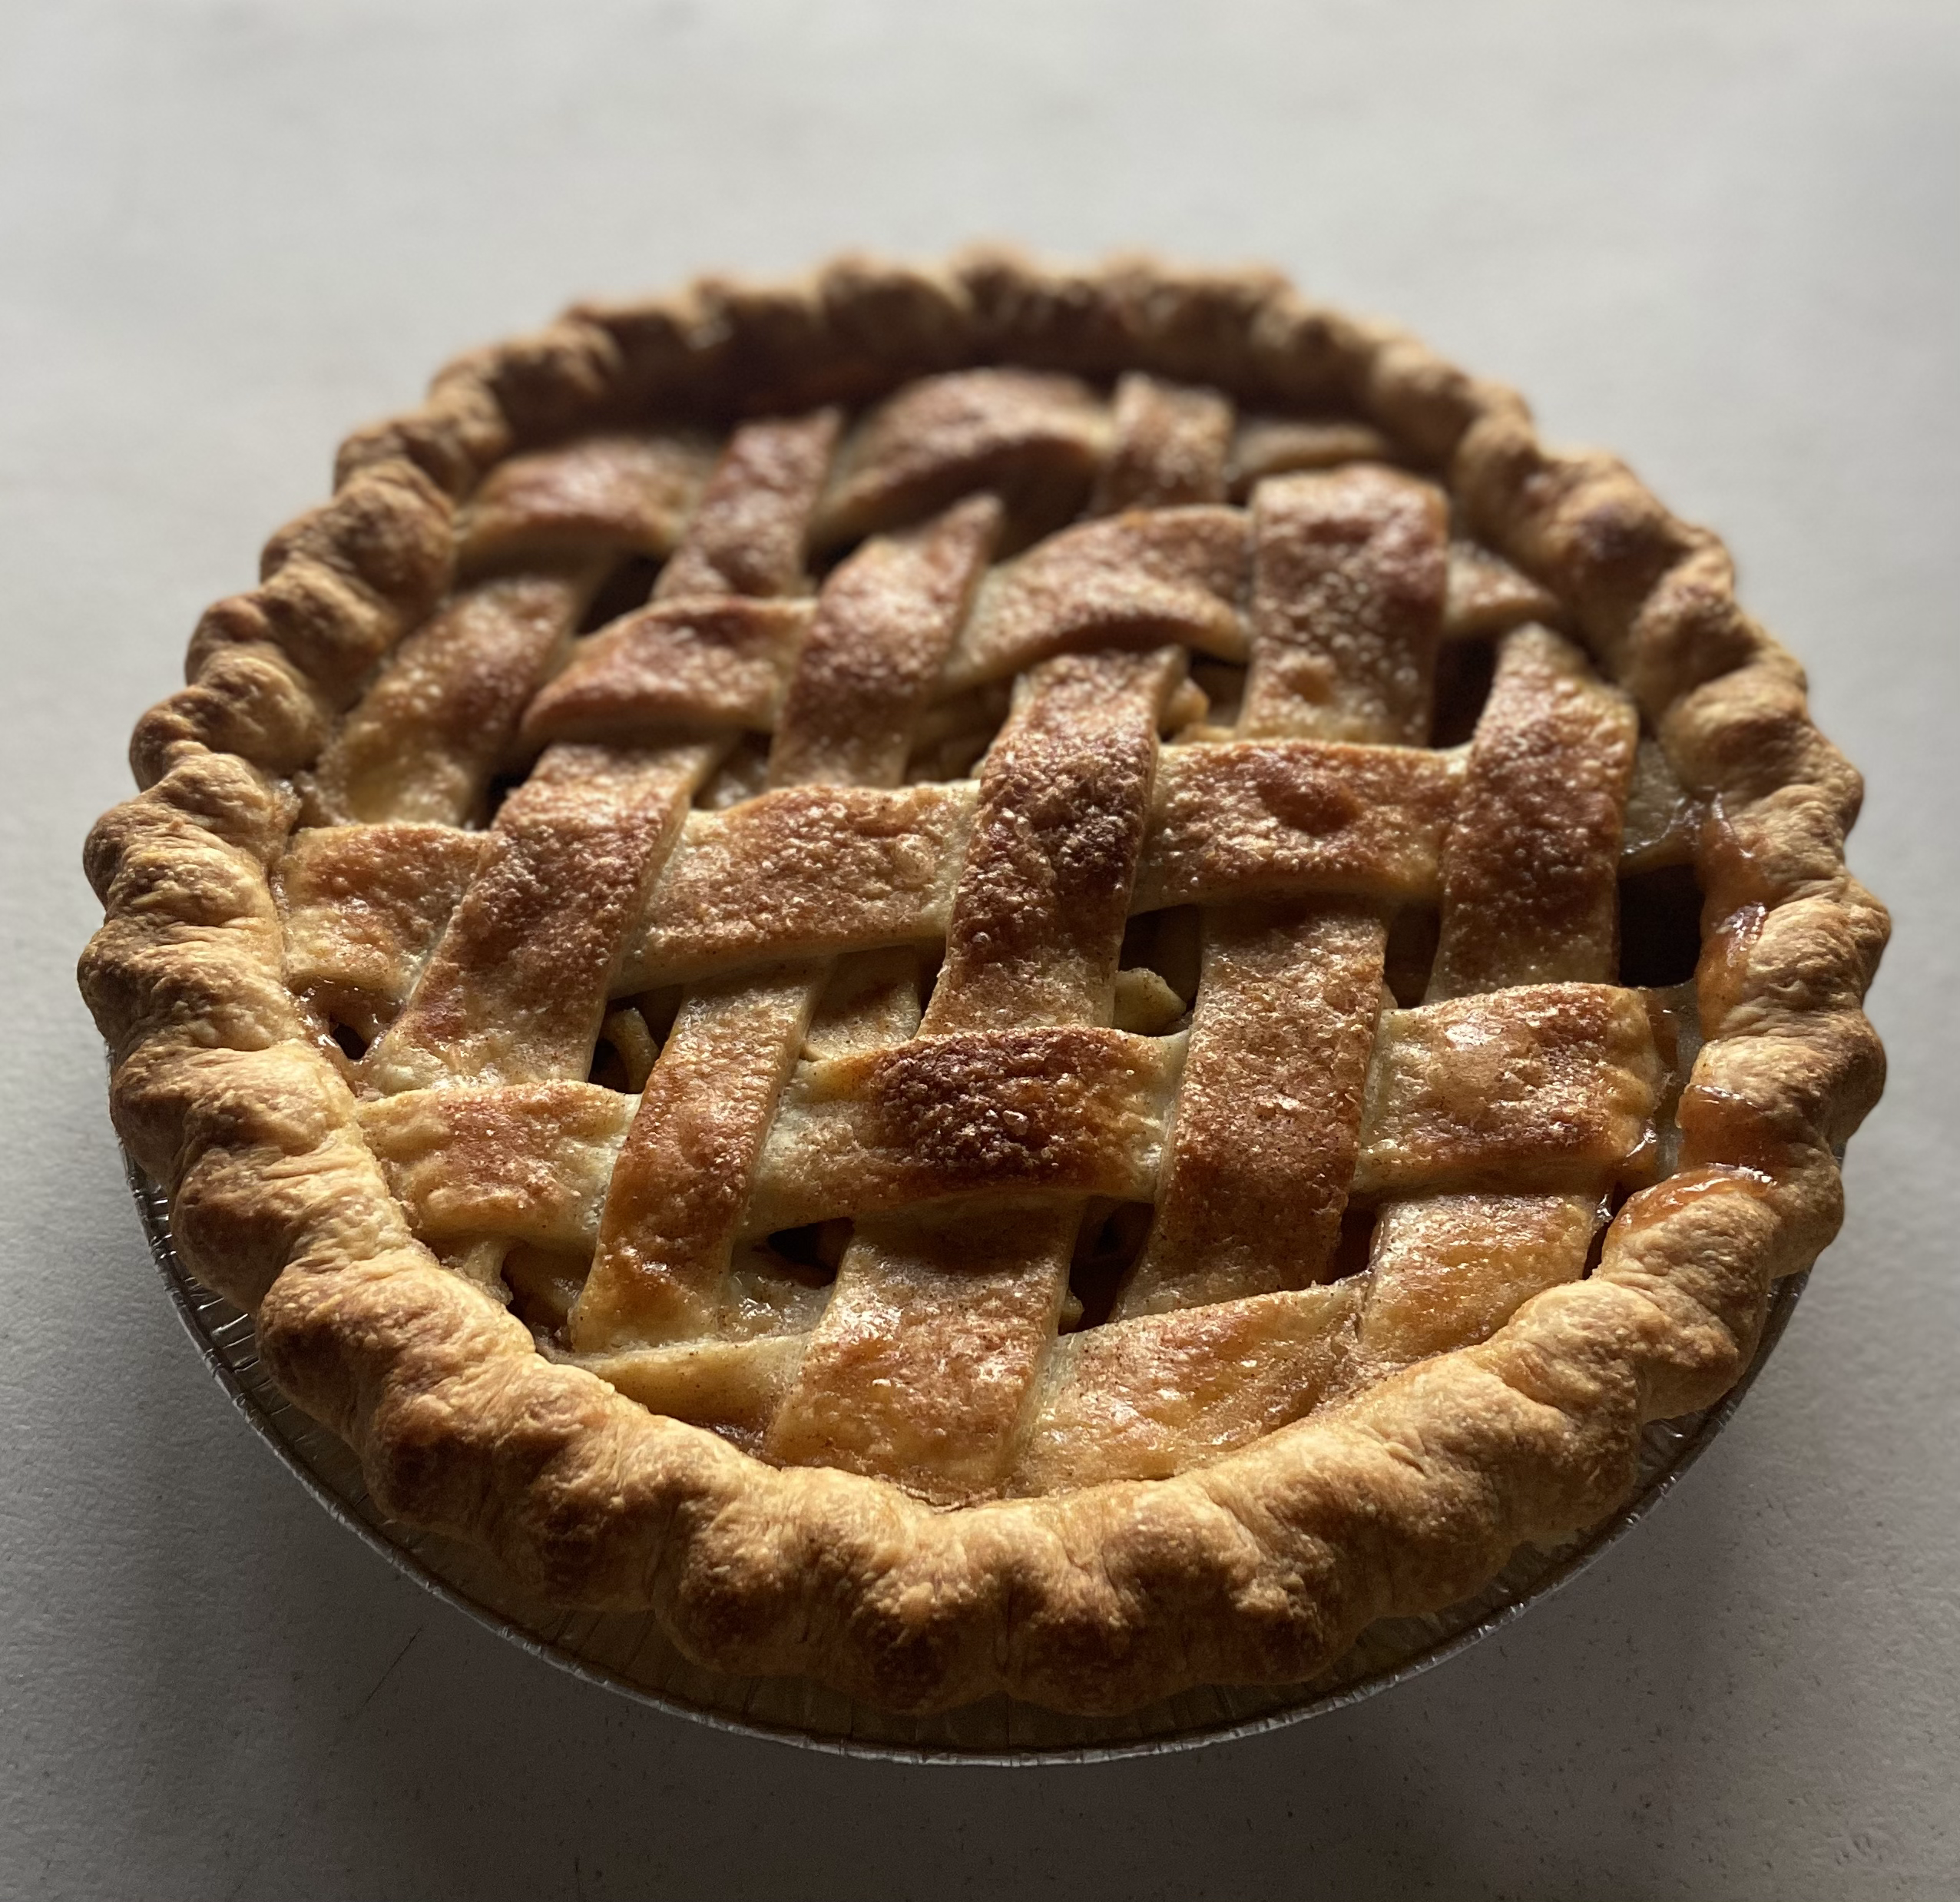 Latticed Apple Pie